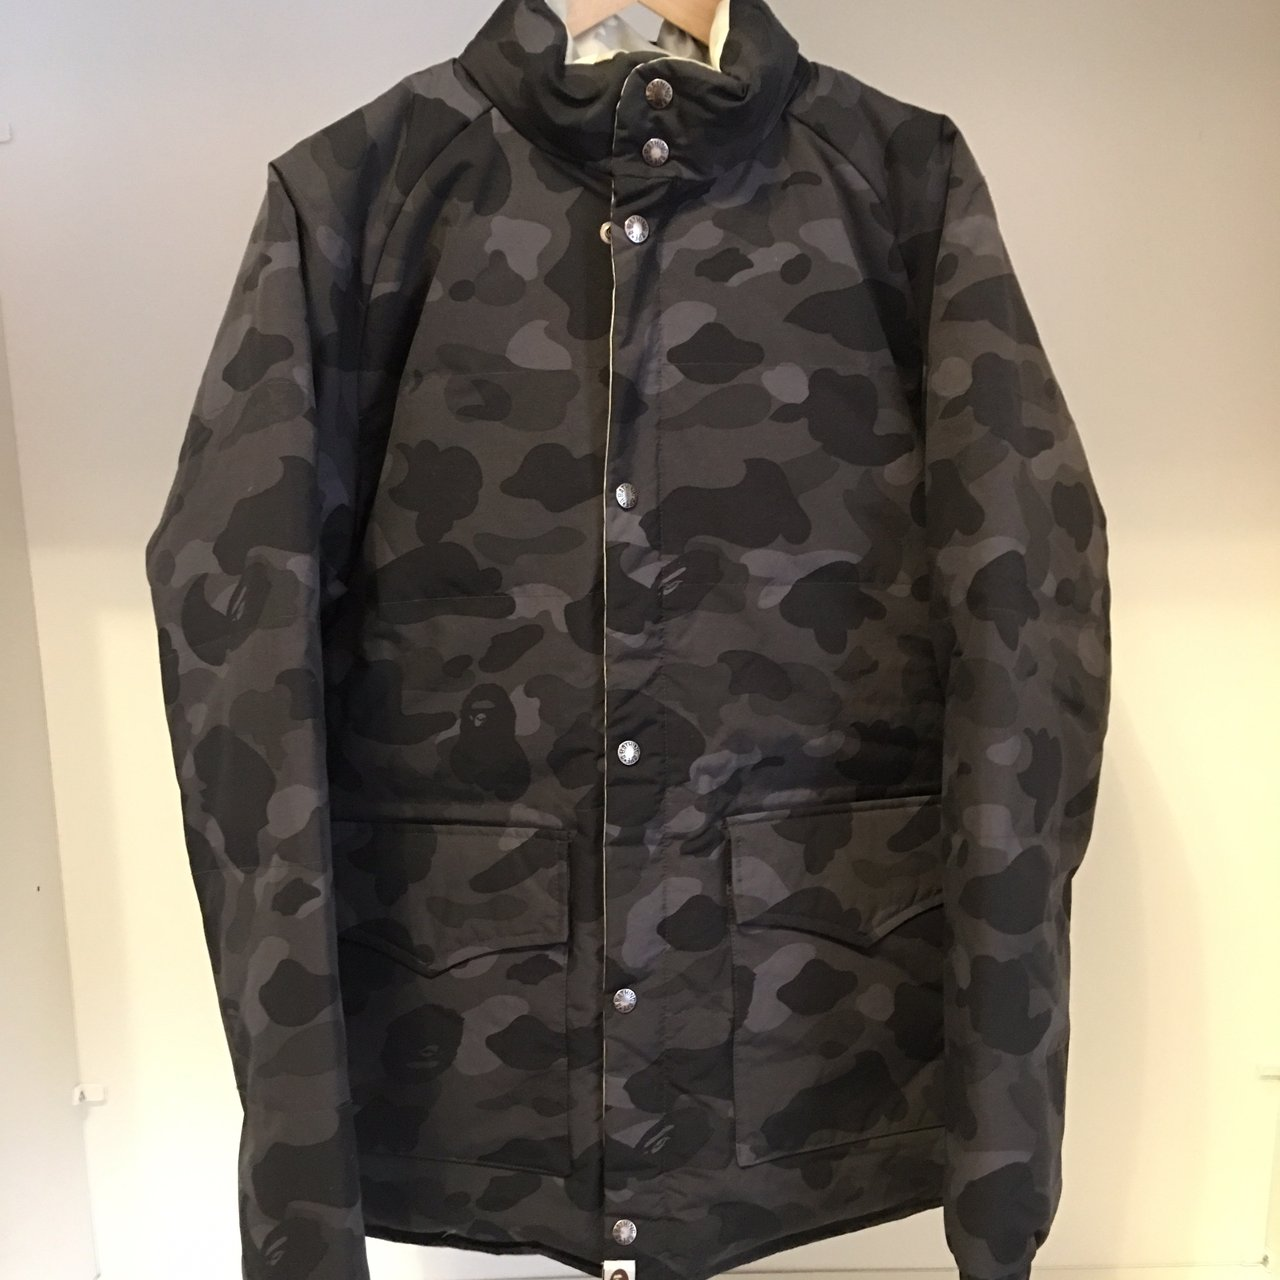 e51ccb2f852 STEAL DEAL PUFFER BAPE SIZE M REVERSIBLE VERY